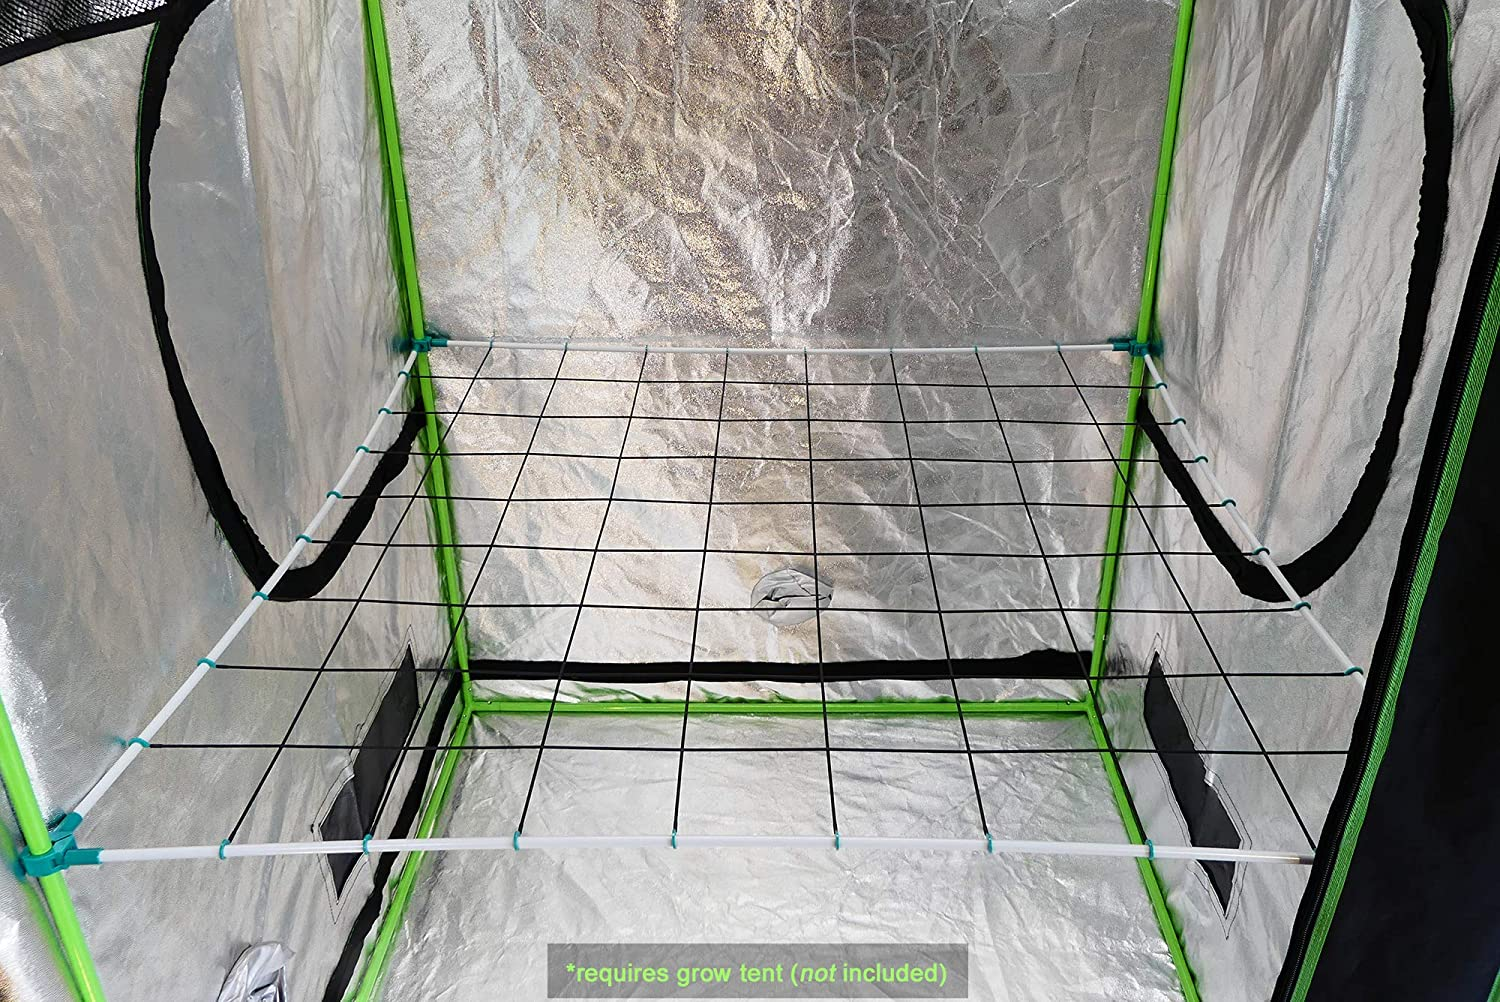 Scrog-Pro Trellis System for 4x4 Grow Tents Large 3//4 connectors